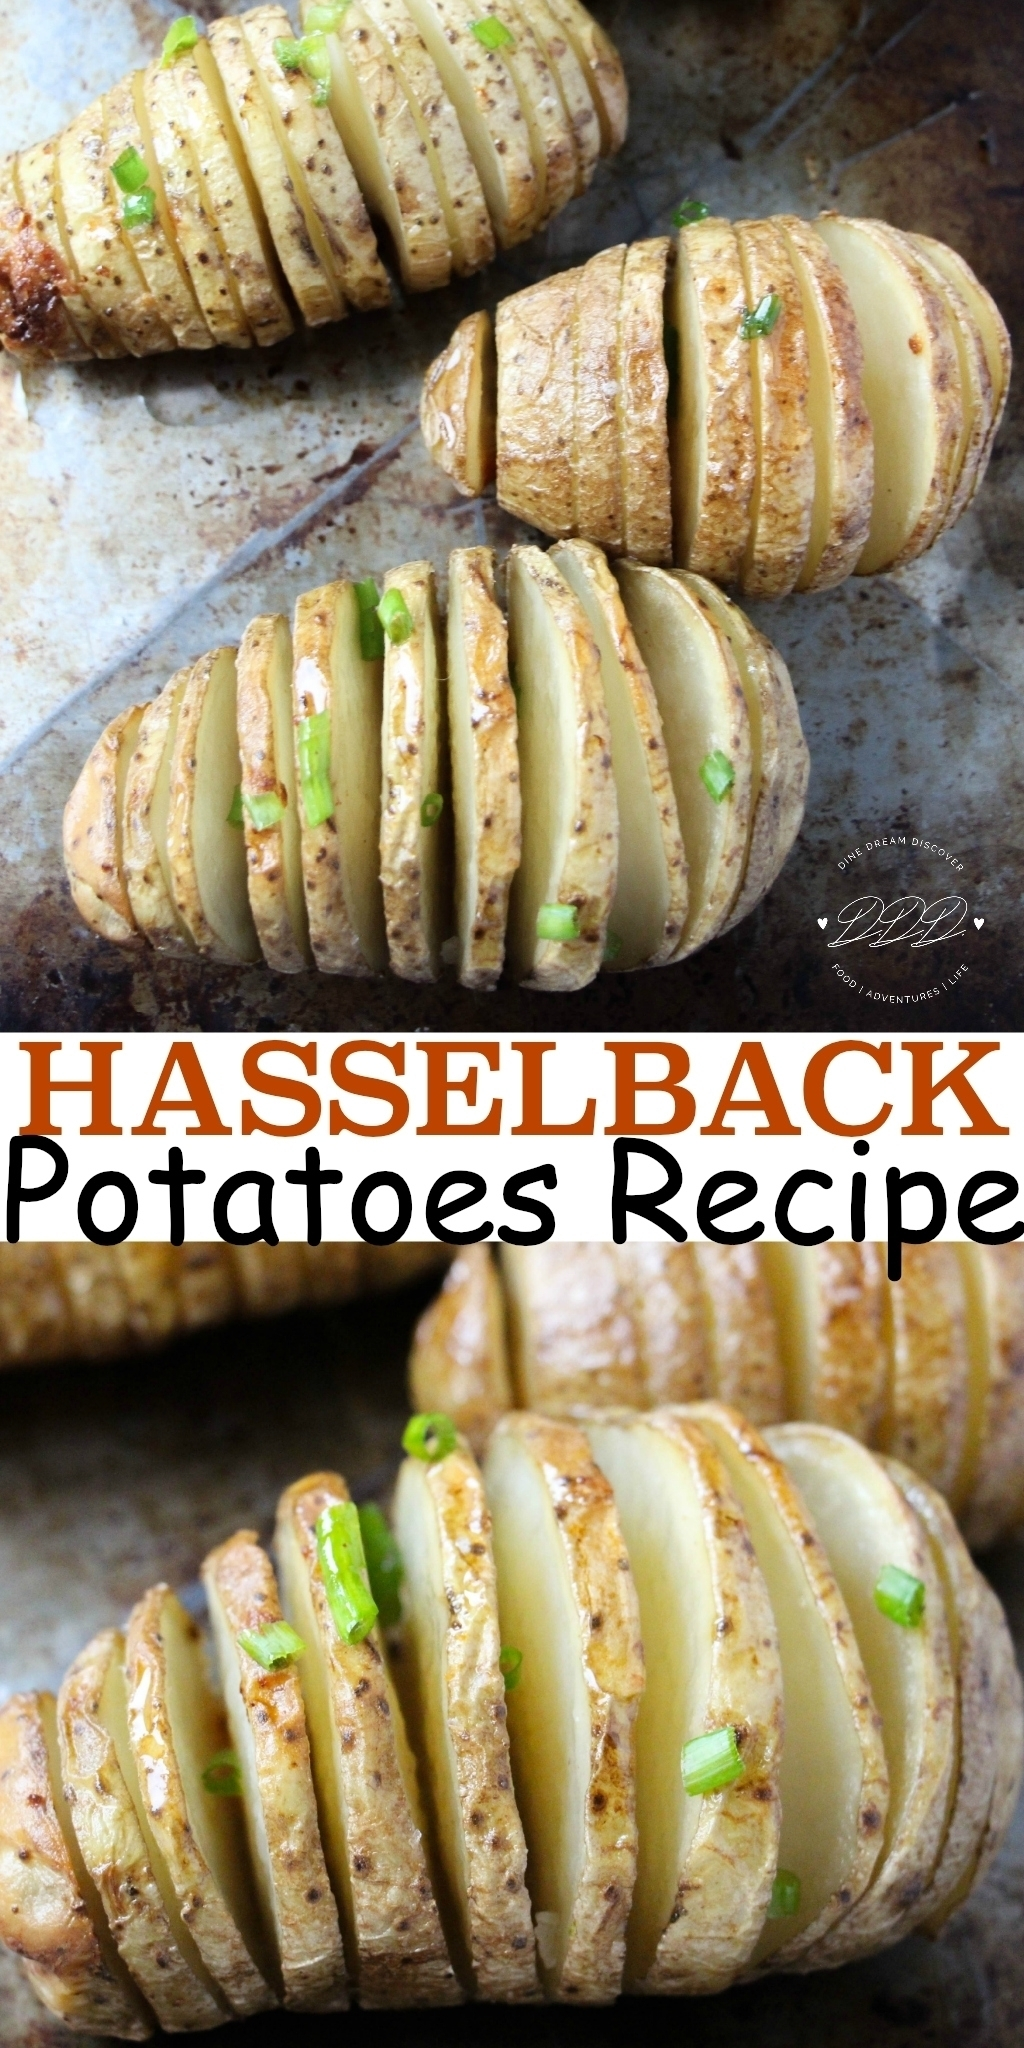 TheHasselback Potatoes Recipe is the perfect addition to any meal. A delicious buttery potato seasoned just right. Add cheese and sour cream to top it off.